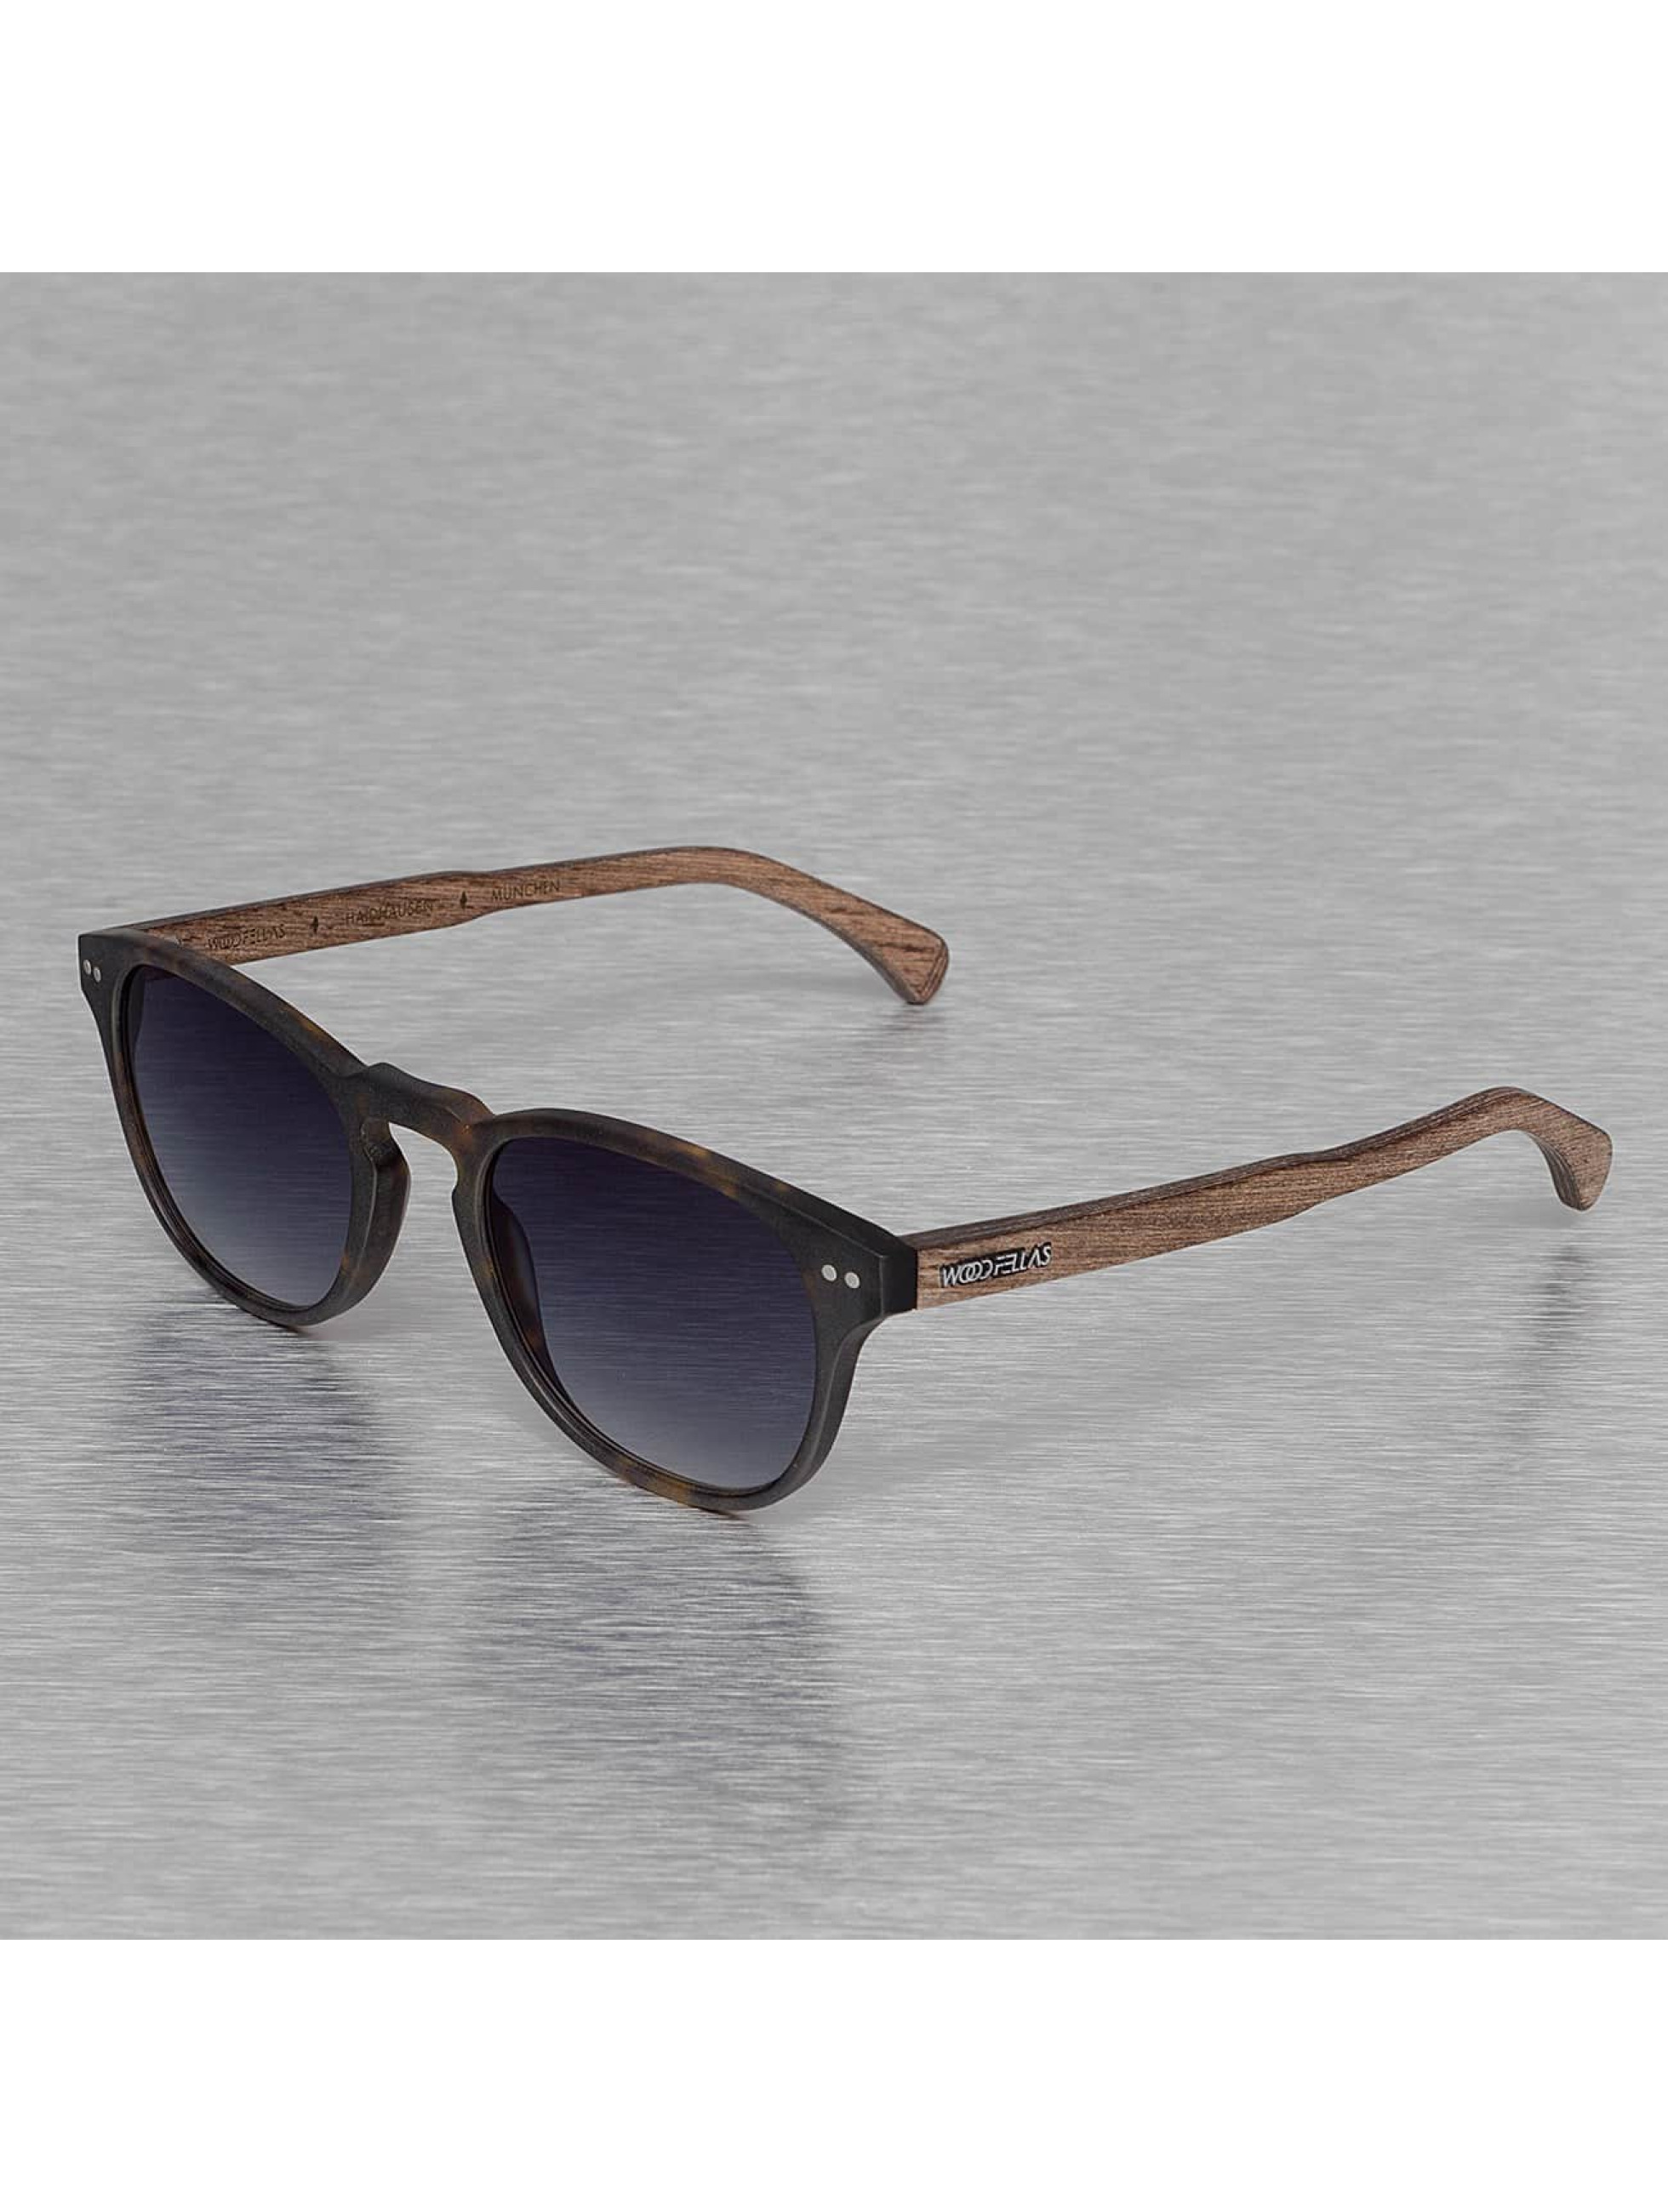 Wood Fellas Eyewear Männer,Frauen Sonnenbrille Eyewear Haidhausen Polarized Mirror in braun